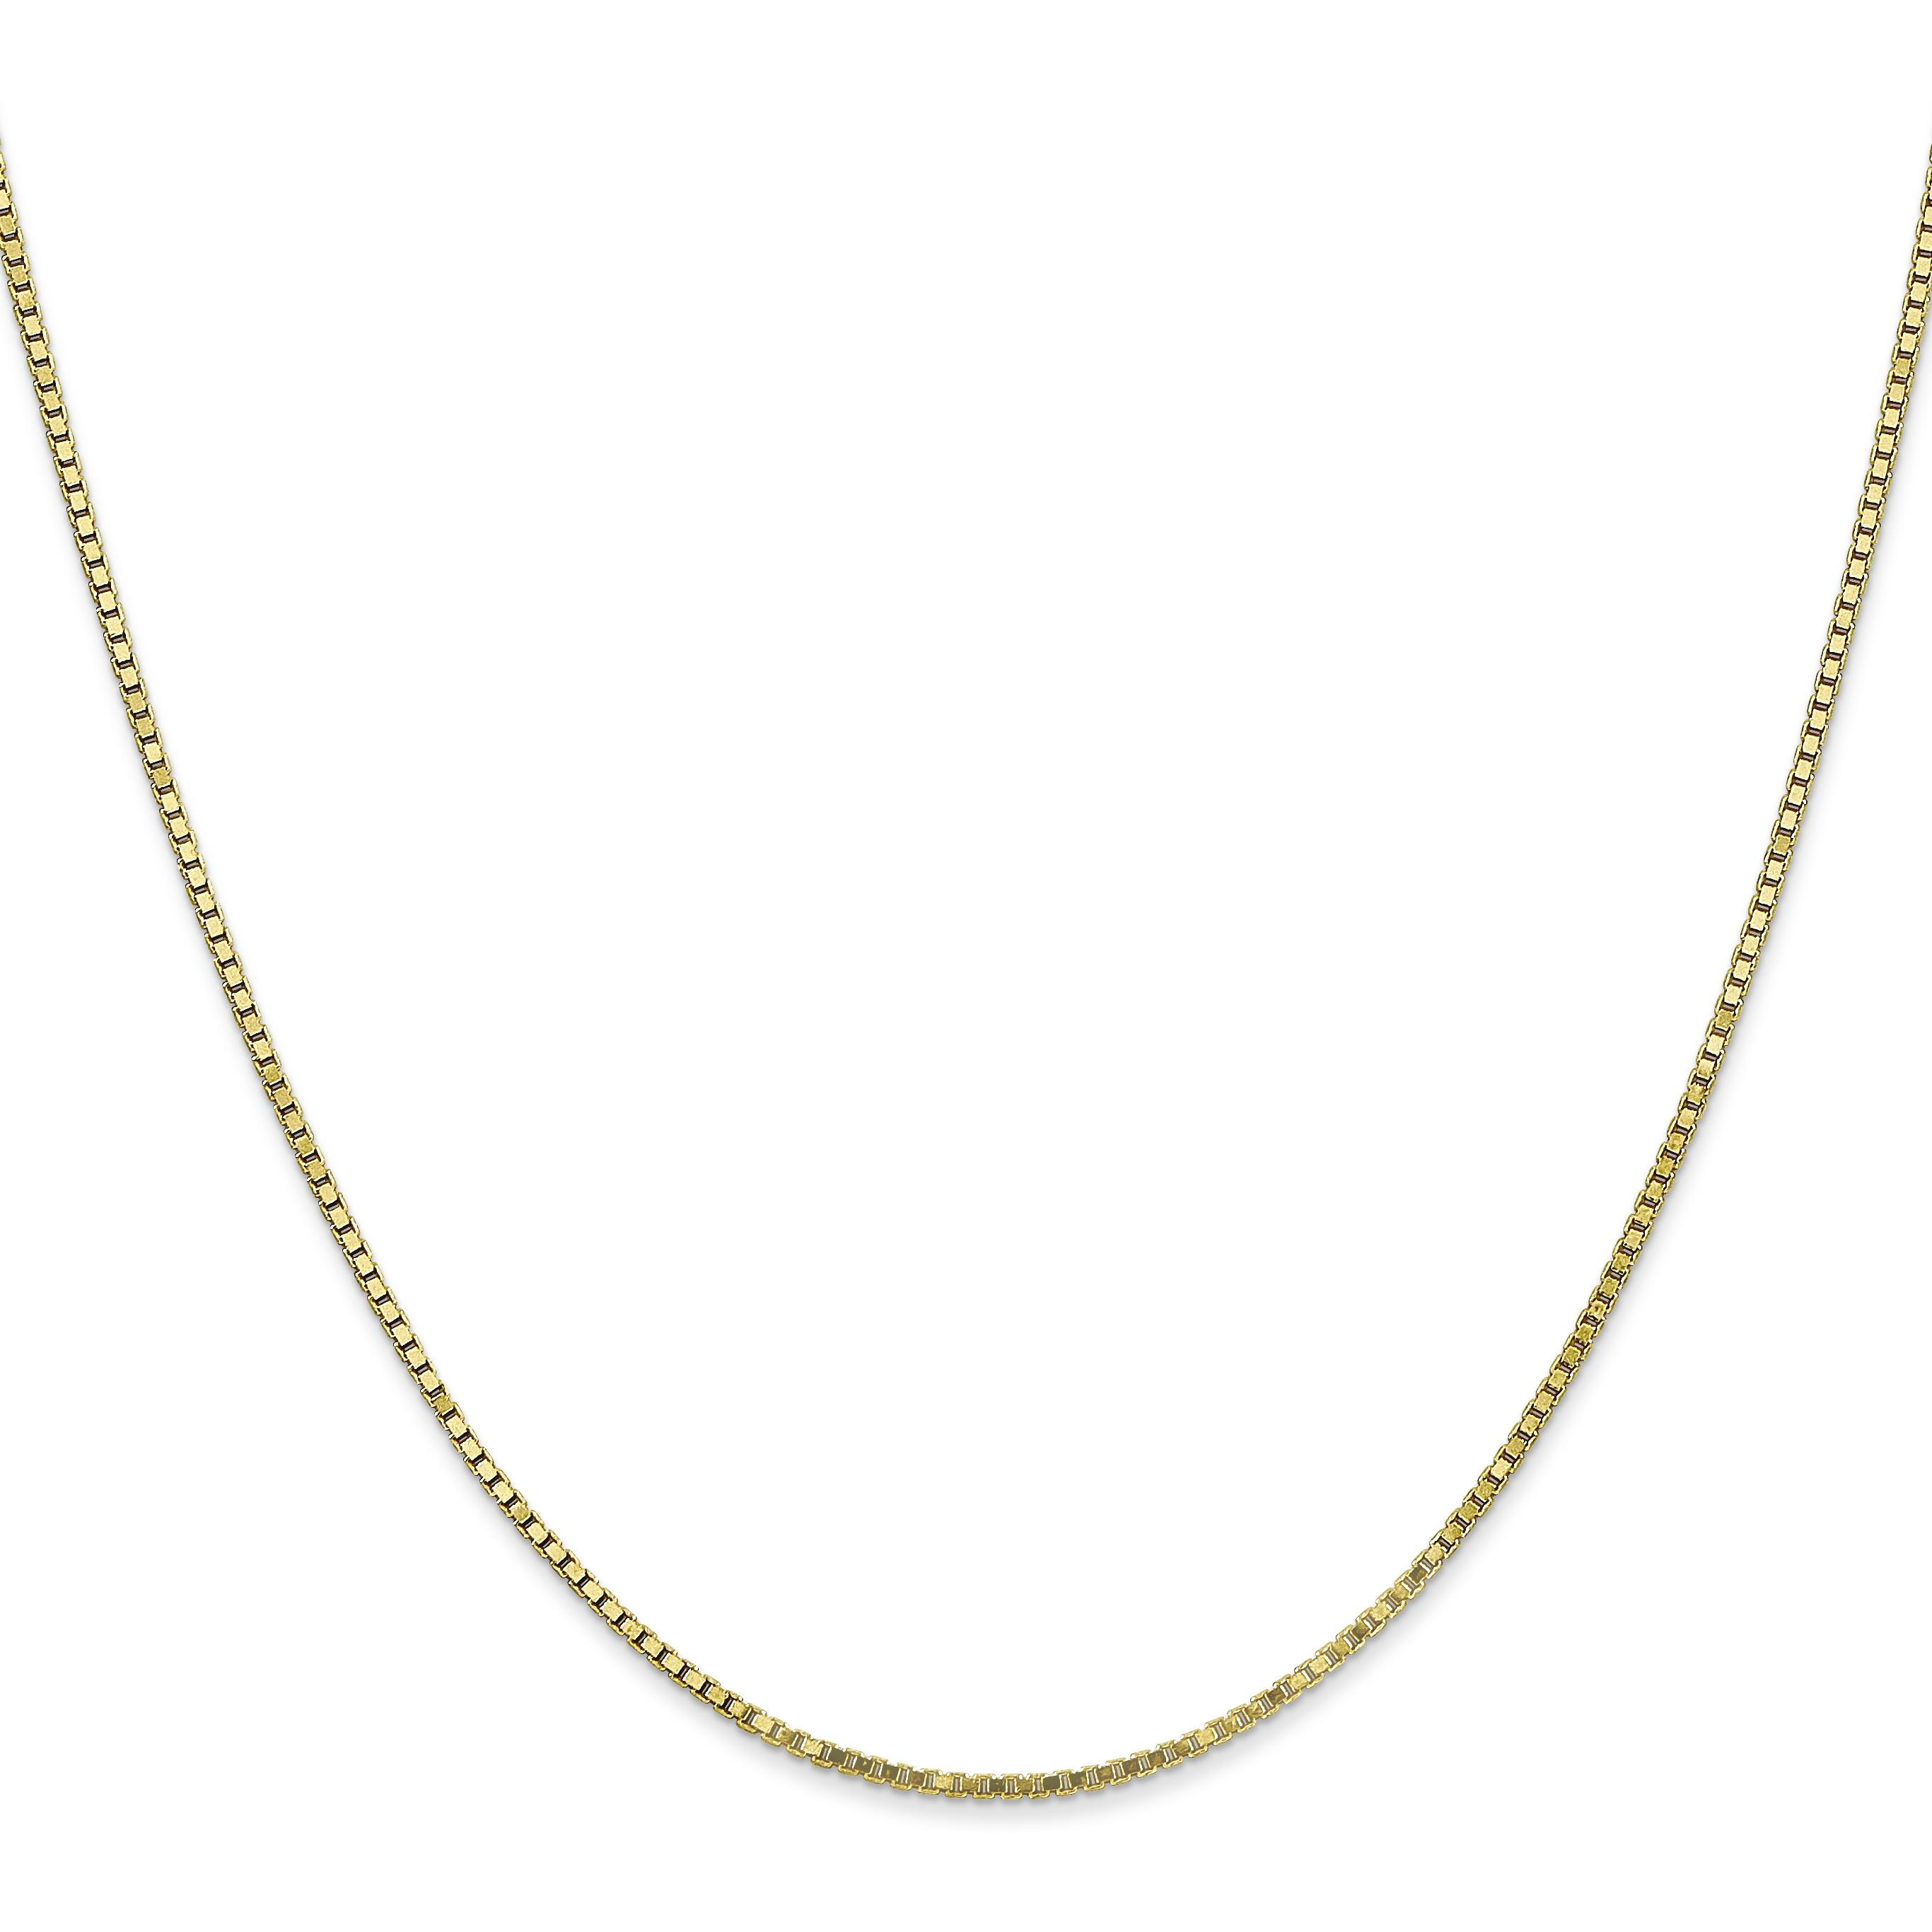 "Findingking 10K Yellow Gold 1.3mm Box Chain Necklace Jewelry 22"" at Sears.com"